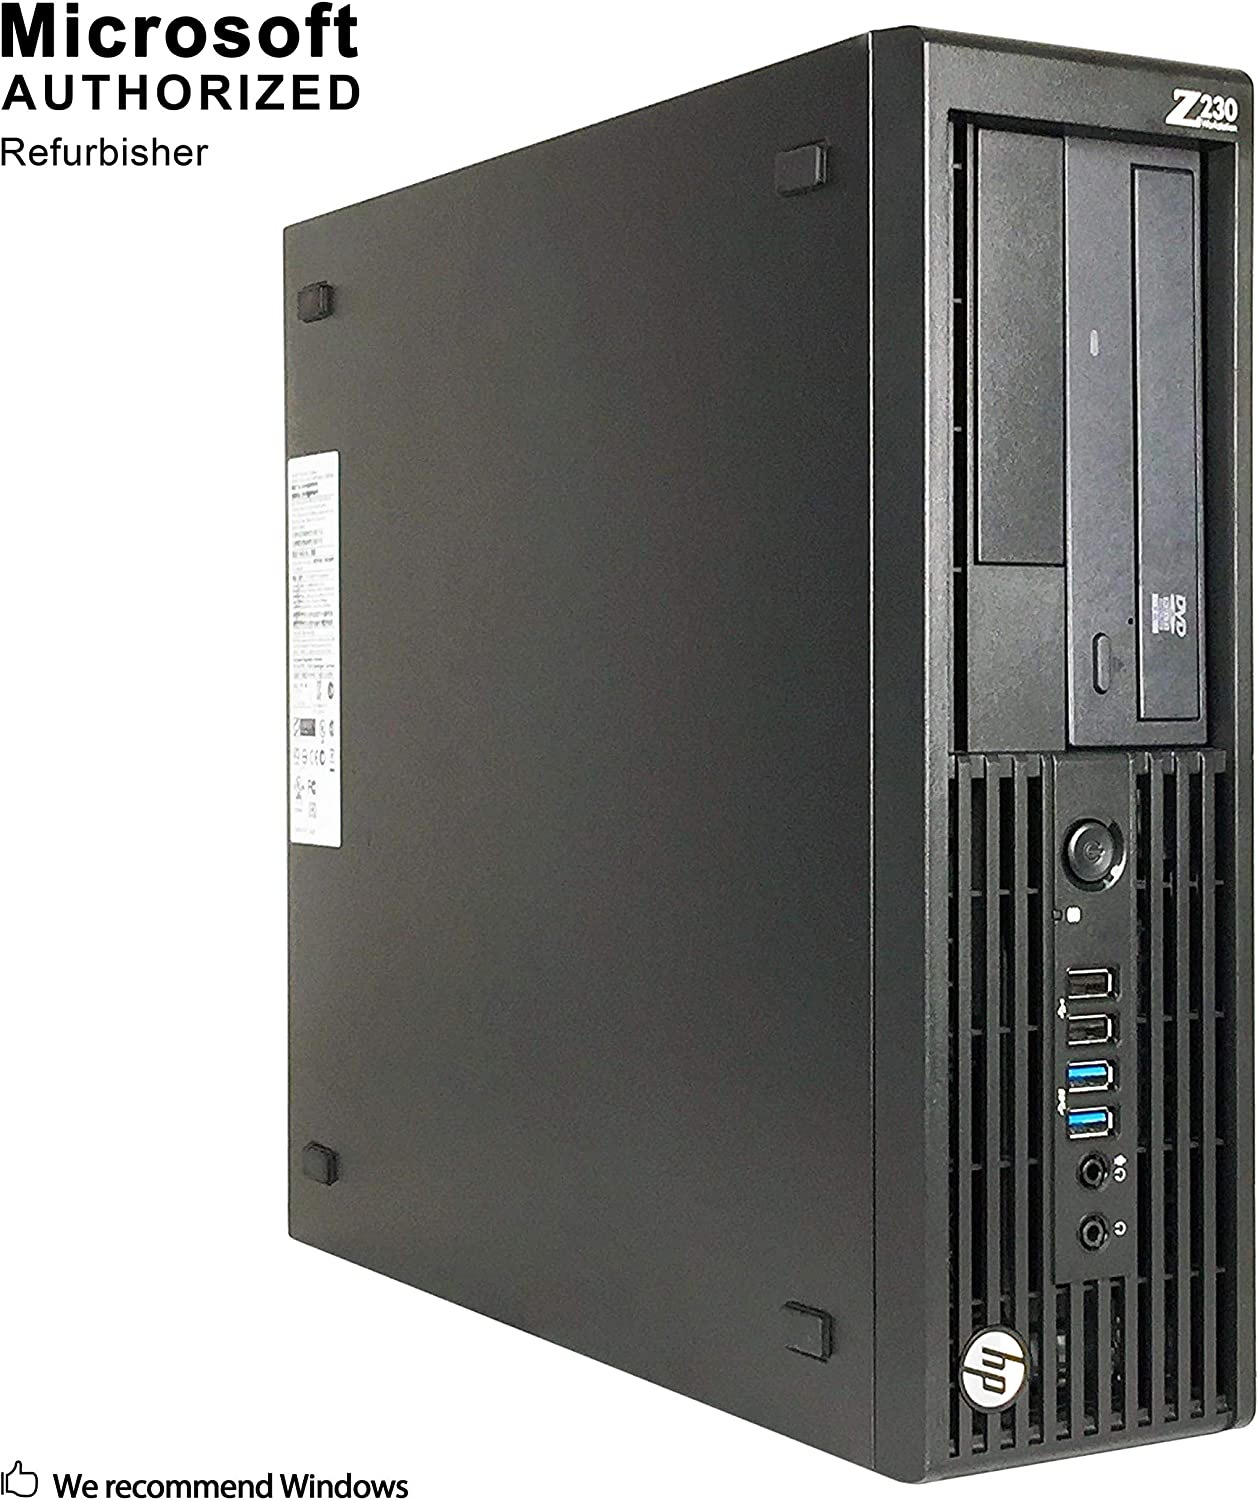 HP Workstation Z230 Small Form Factor PC, Intel Quad Core i7-4790 up to 4.0GHz, 16G DDR3, 1T, WiFi, BT 4.0, DVD, Windows 10 64 Bit-Multi-Language Supports English/Spanish/French(Renewed)